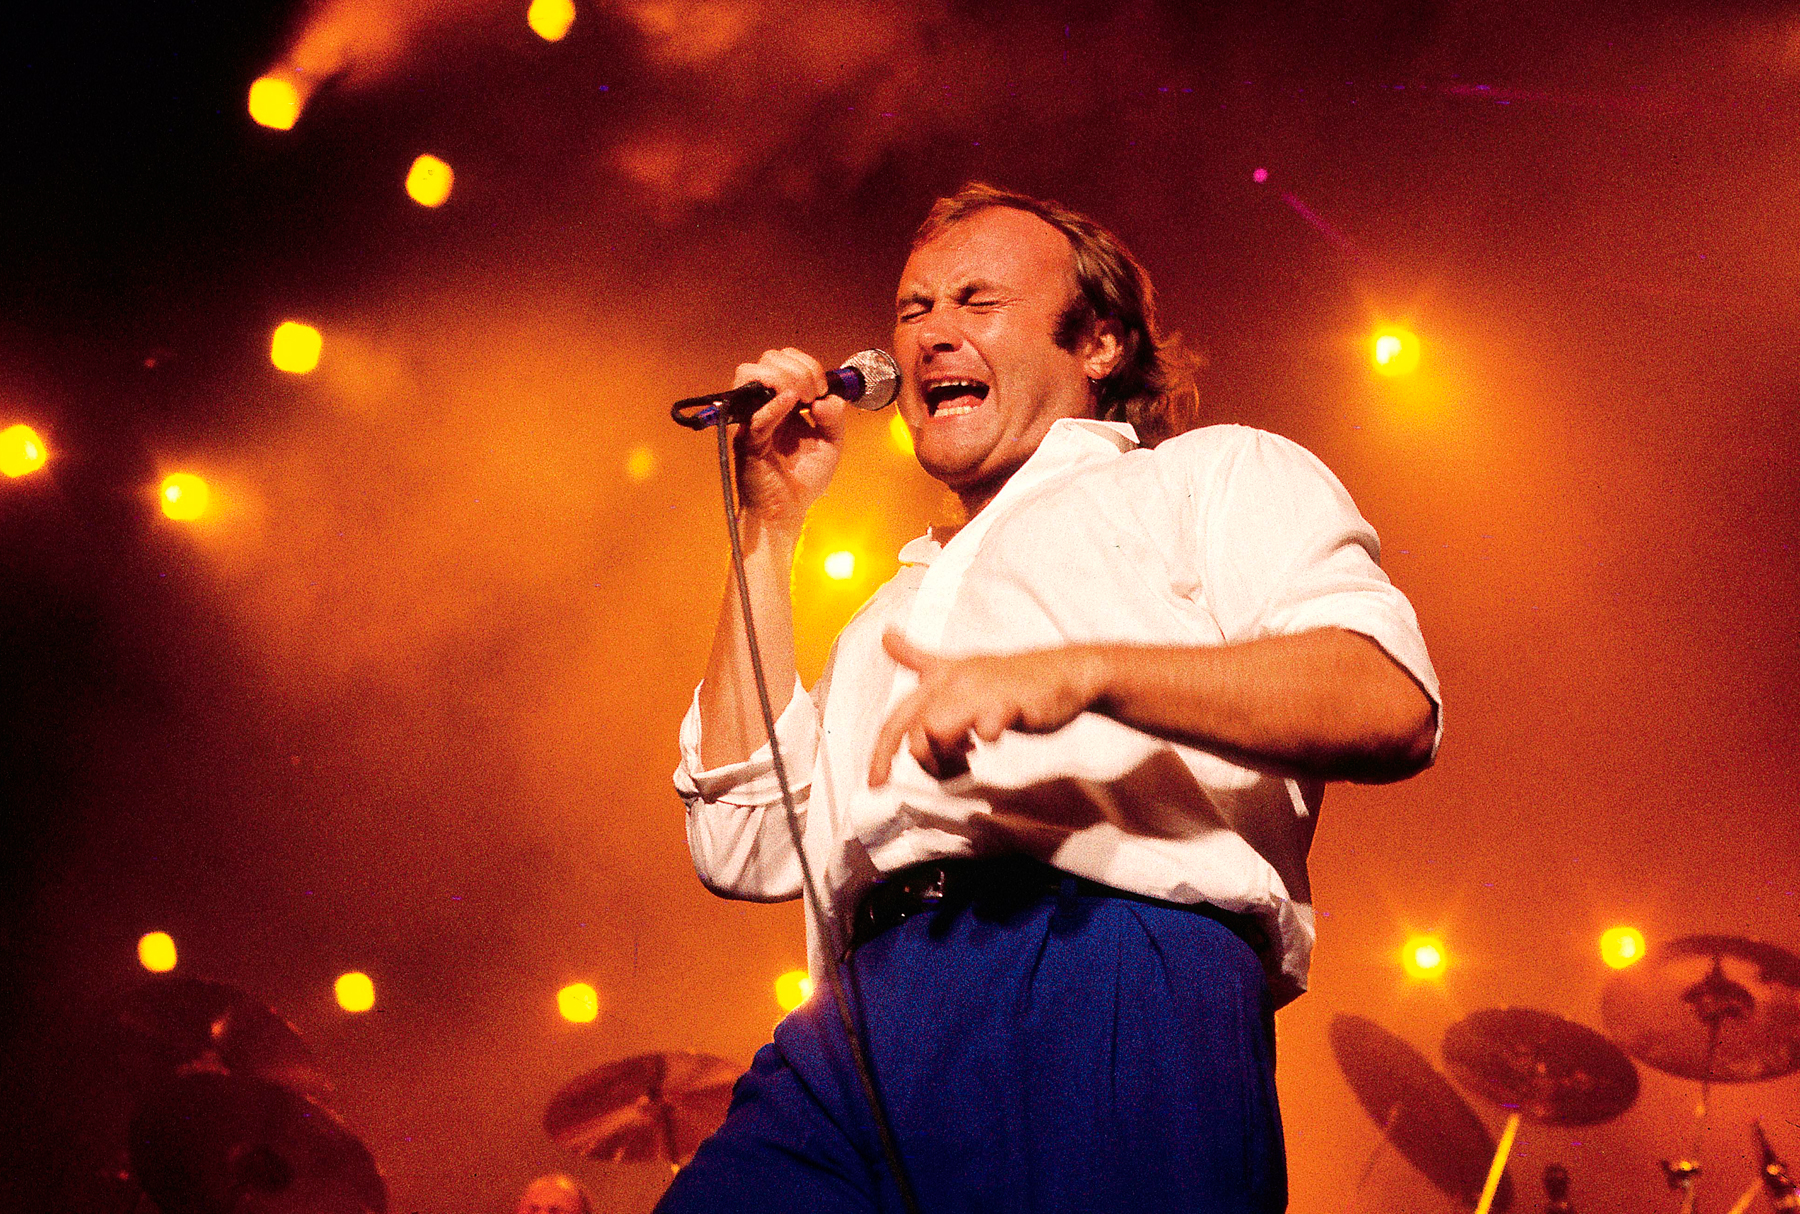 What's Phil Collins' Best Song?